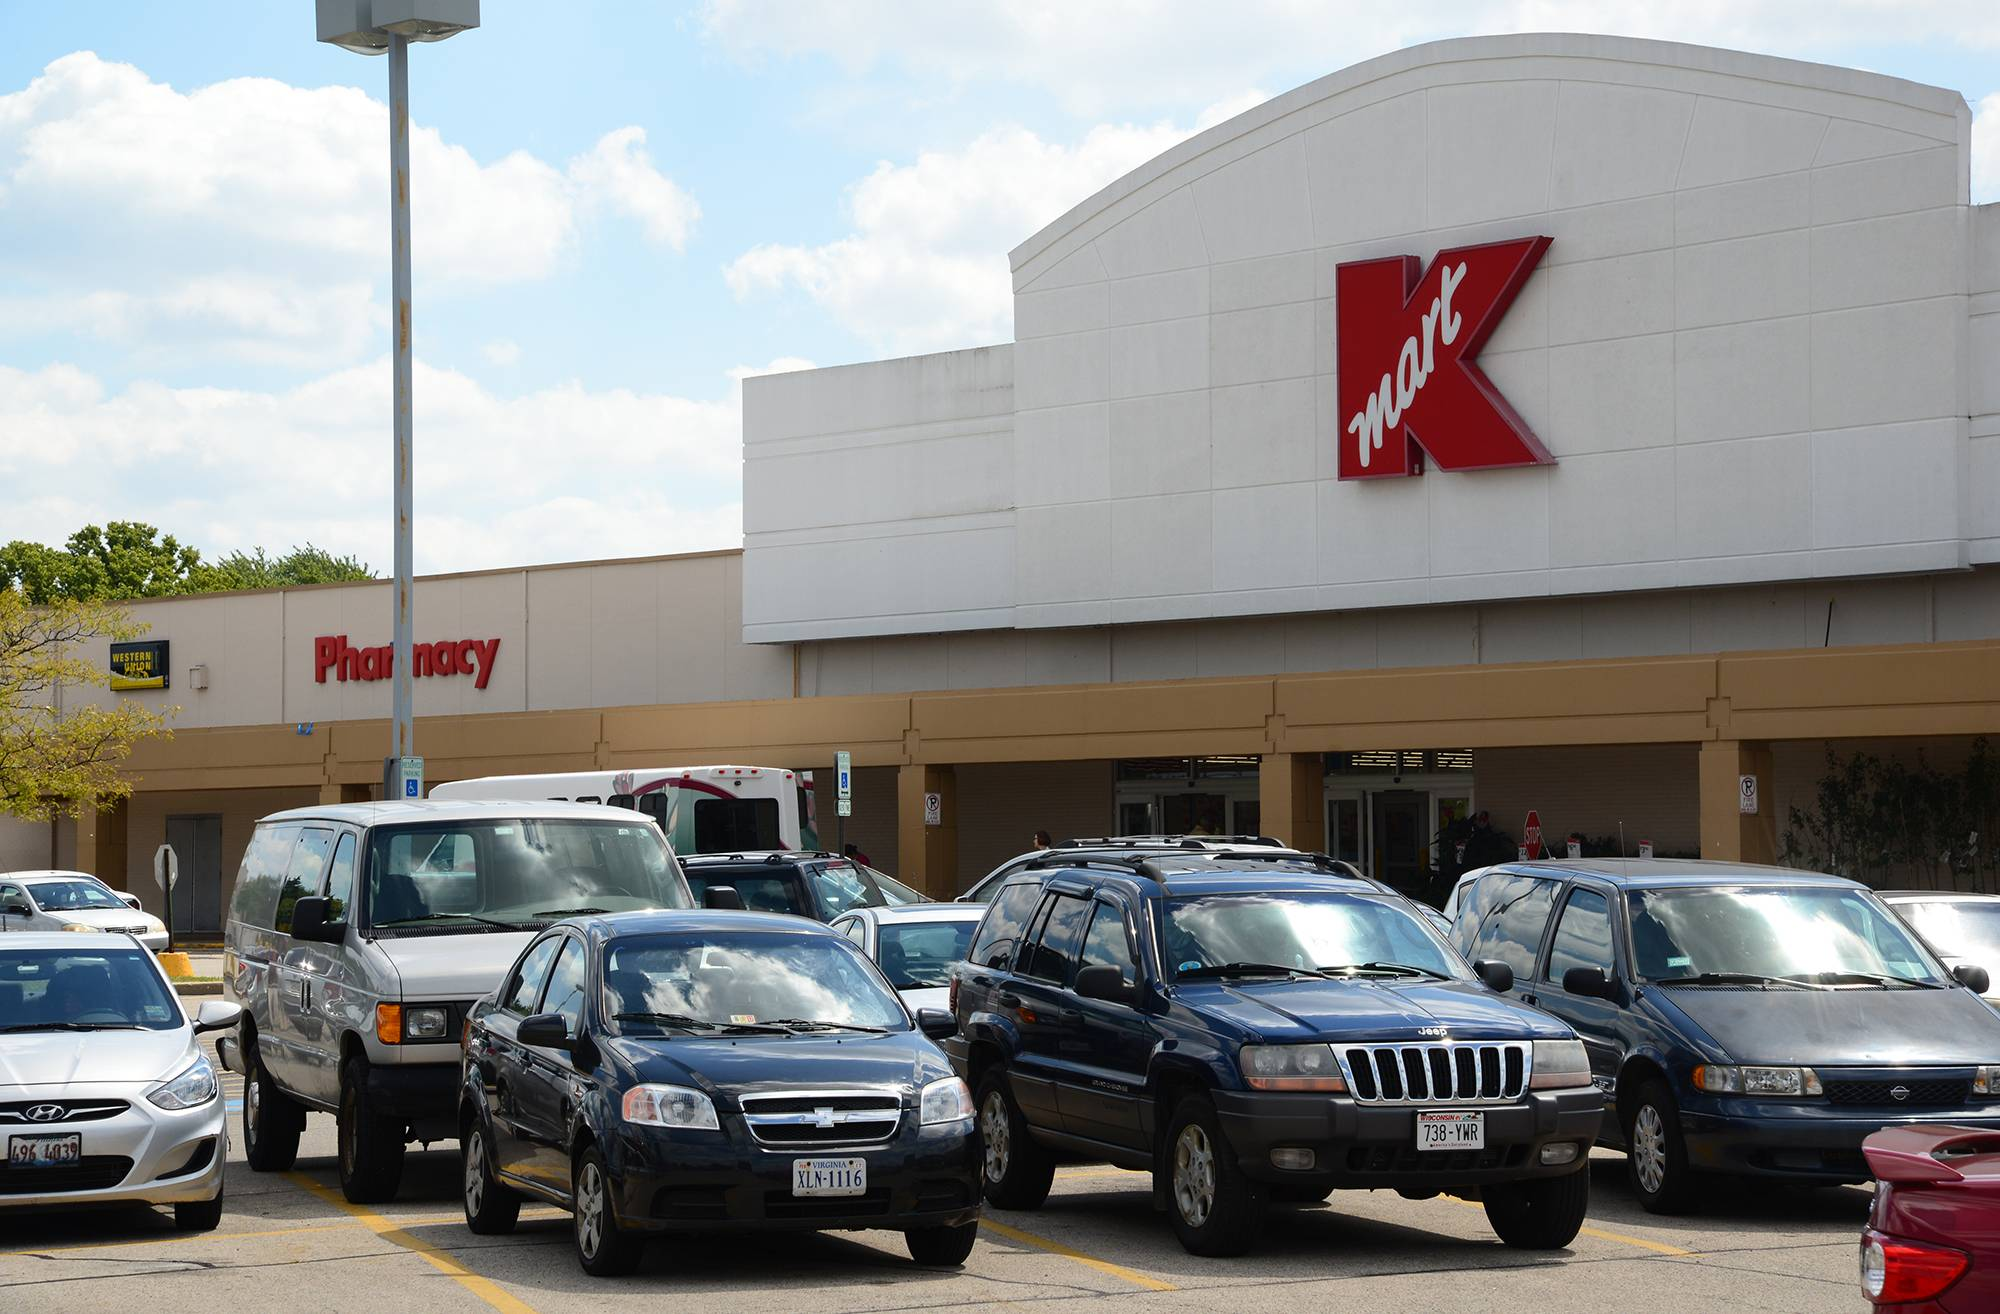 The Kmart in Des Plaines will have a grand reopening on Saturday. While it's a chance to revitalize a store in the community, experts aren't reading a lot into what it means for struggling parent company Sears Holdings.